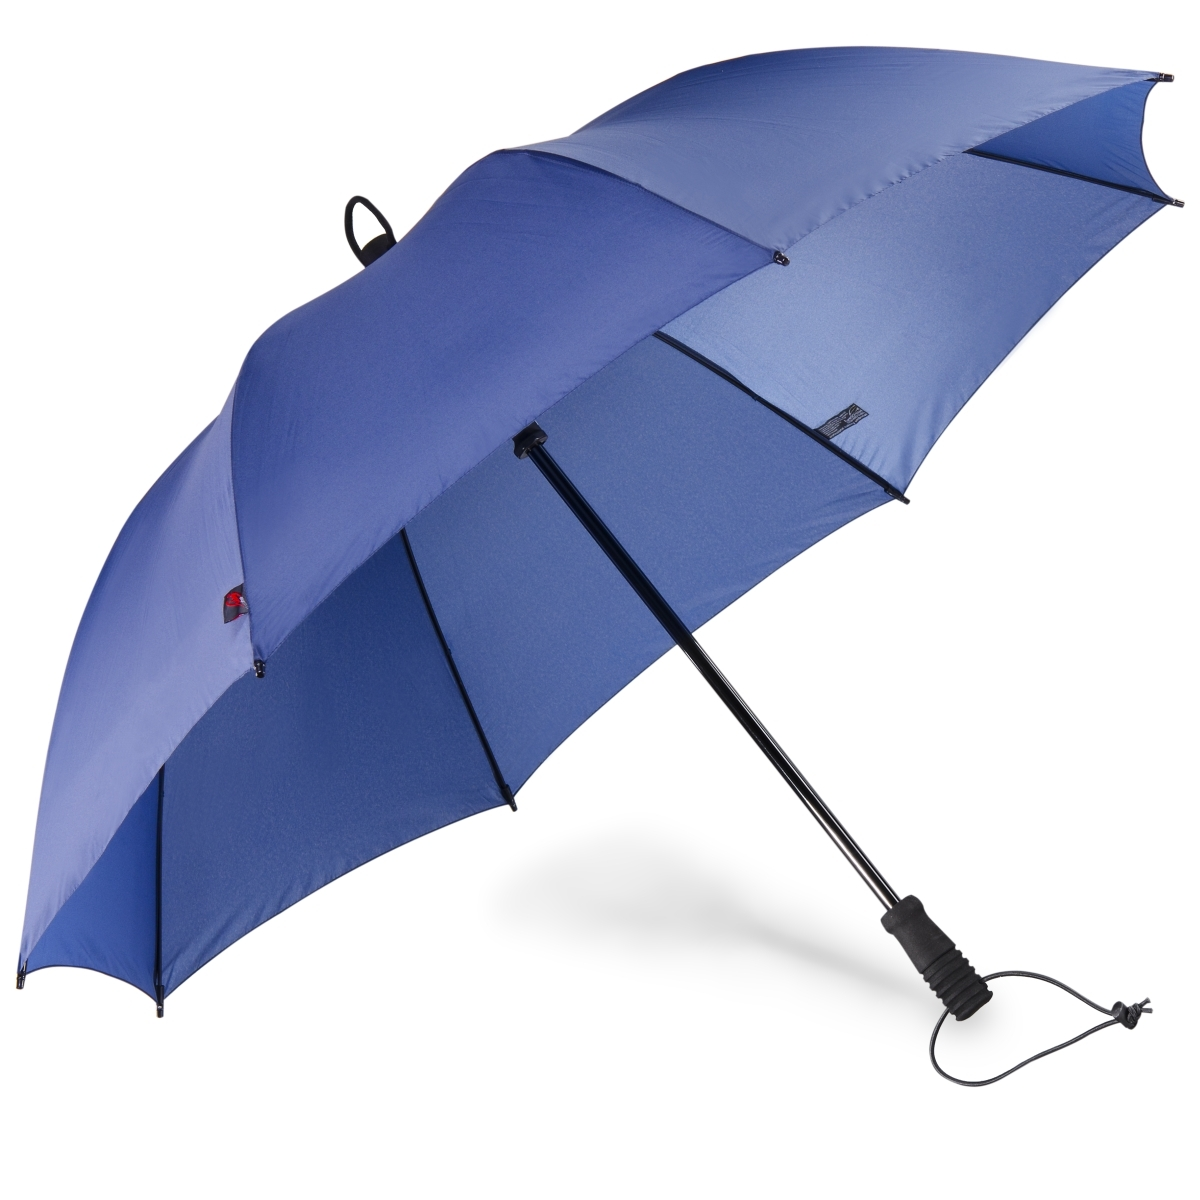 Swing handsfree Umbrella navy blue